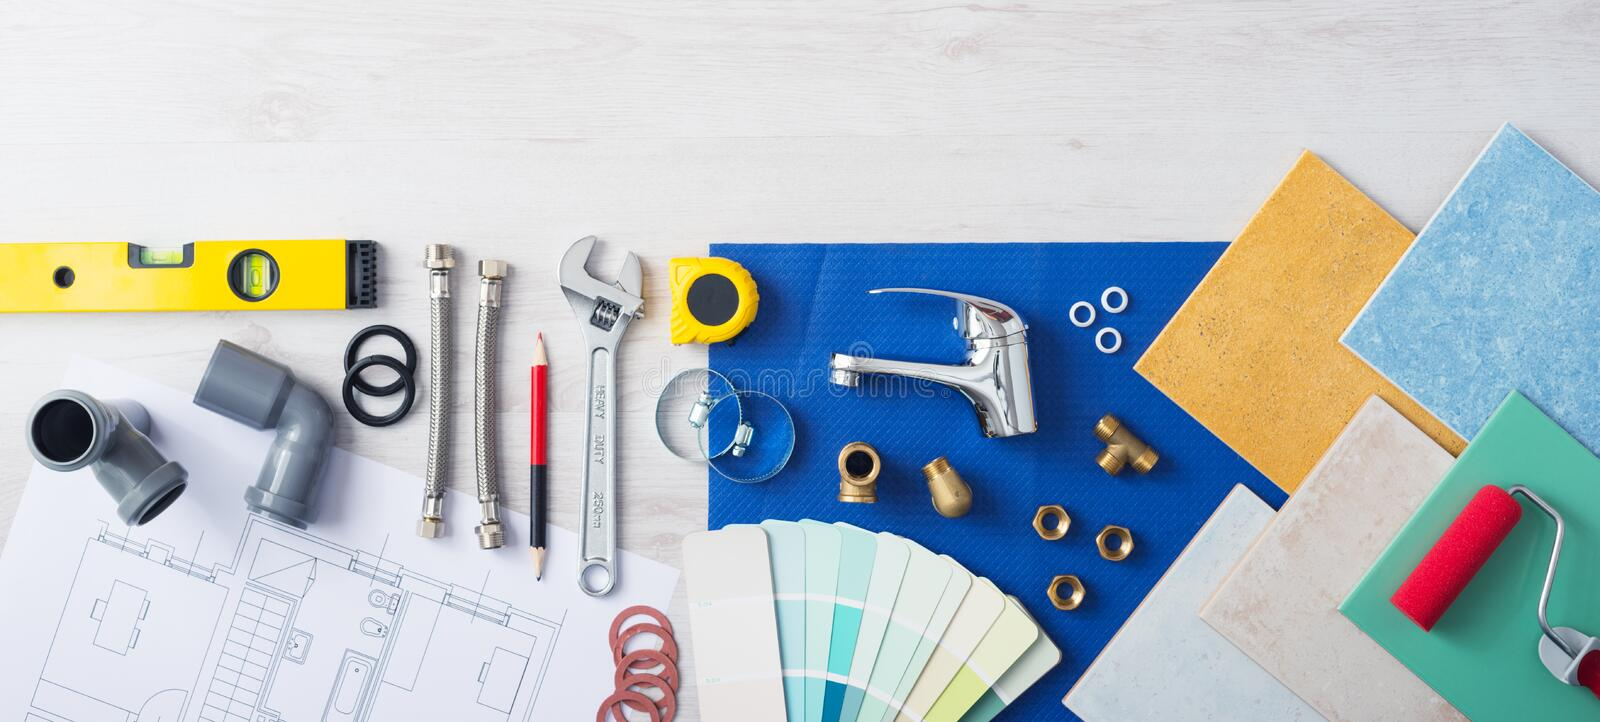 Plumber's work table. Banner with work tools, faucet, tiles and color swatches, top view stock images